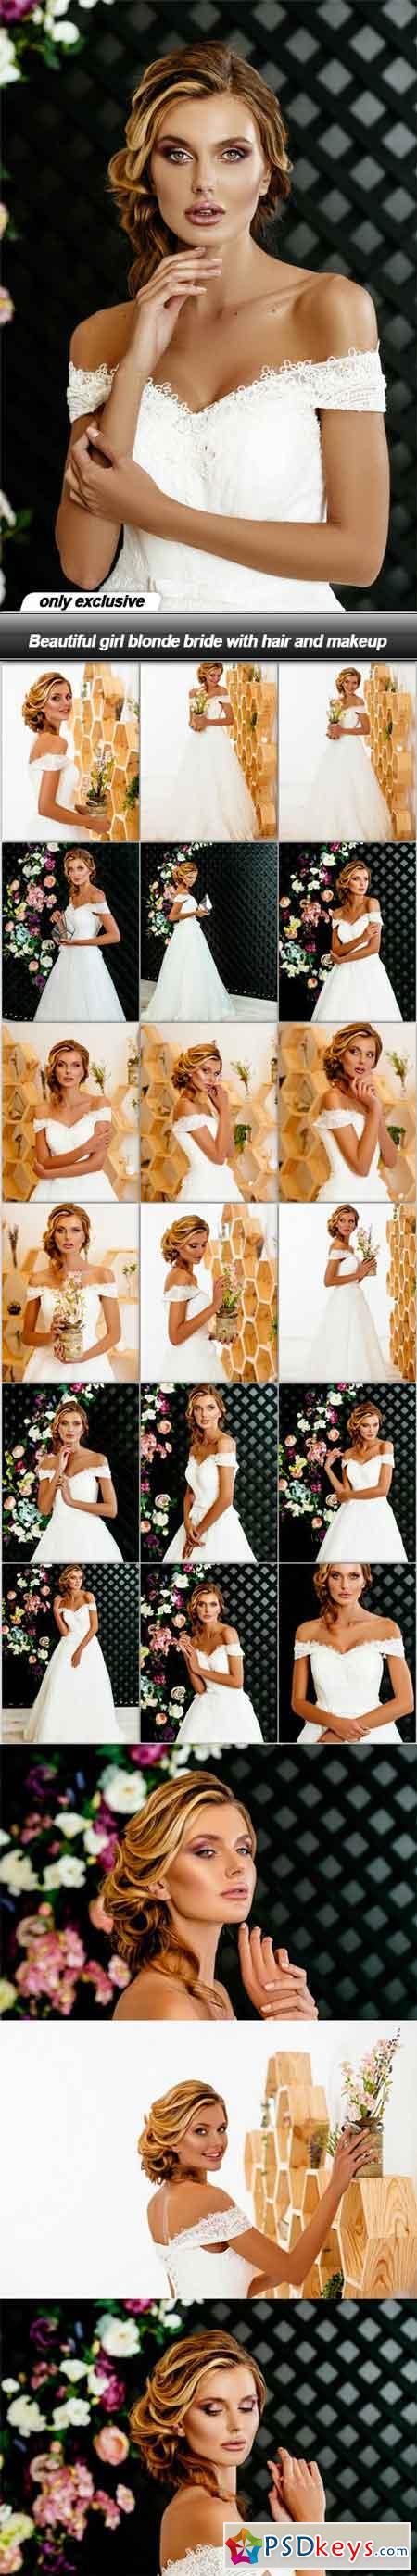 Beautiful girl blonde bride with hair and makeup - 22 UHQ JPEG